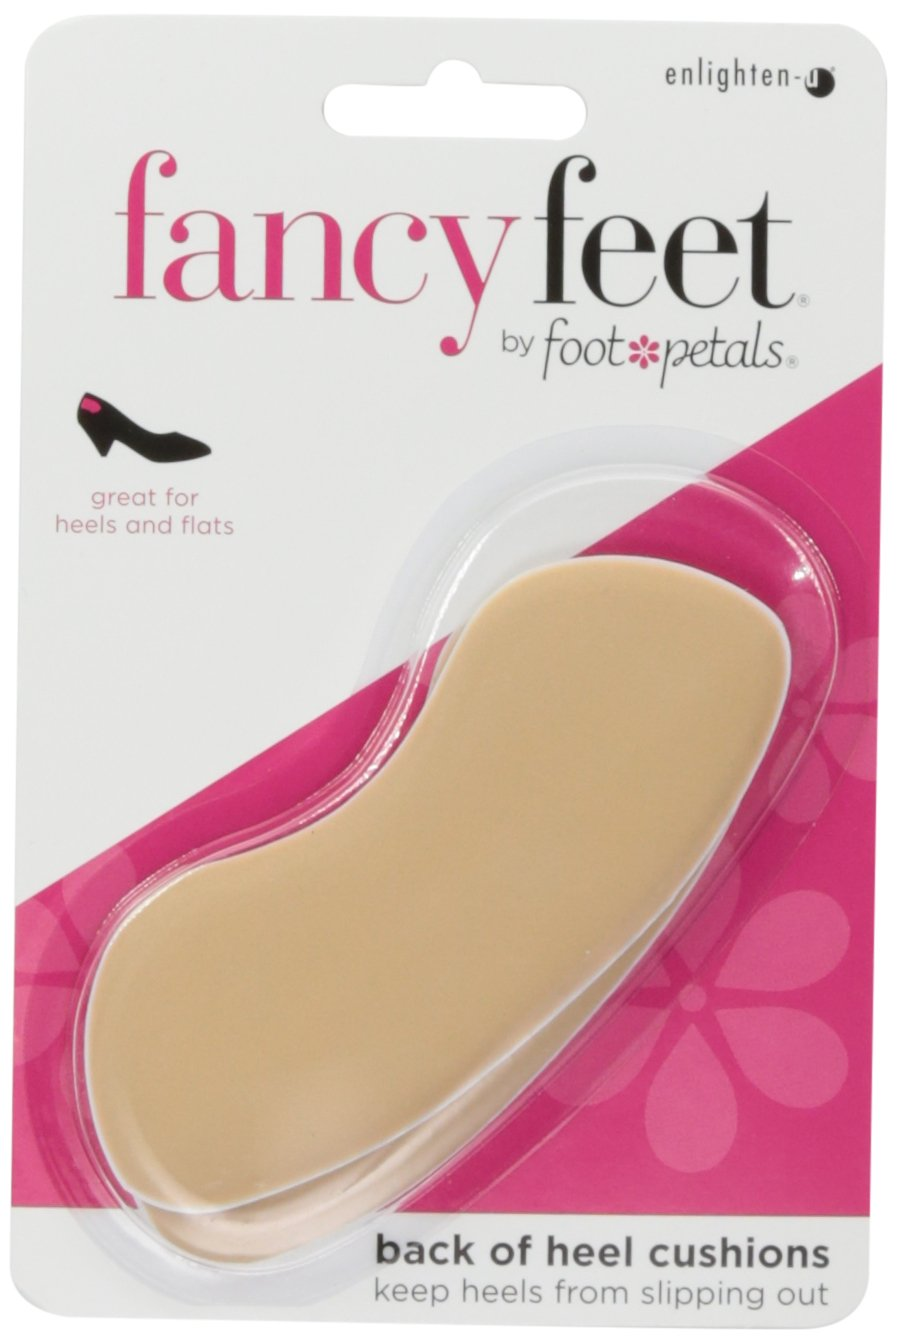 Foot Petals Fancy Feet Back of Heel Cushions - One Pair of Cushioned Heel Inserts to Prevent Rubbing and Blisters from Uncomfortable Shoes, Khaki